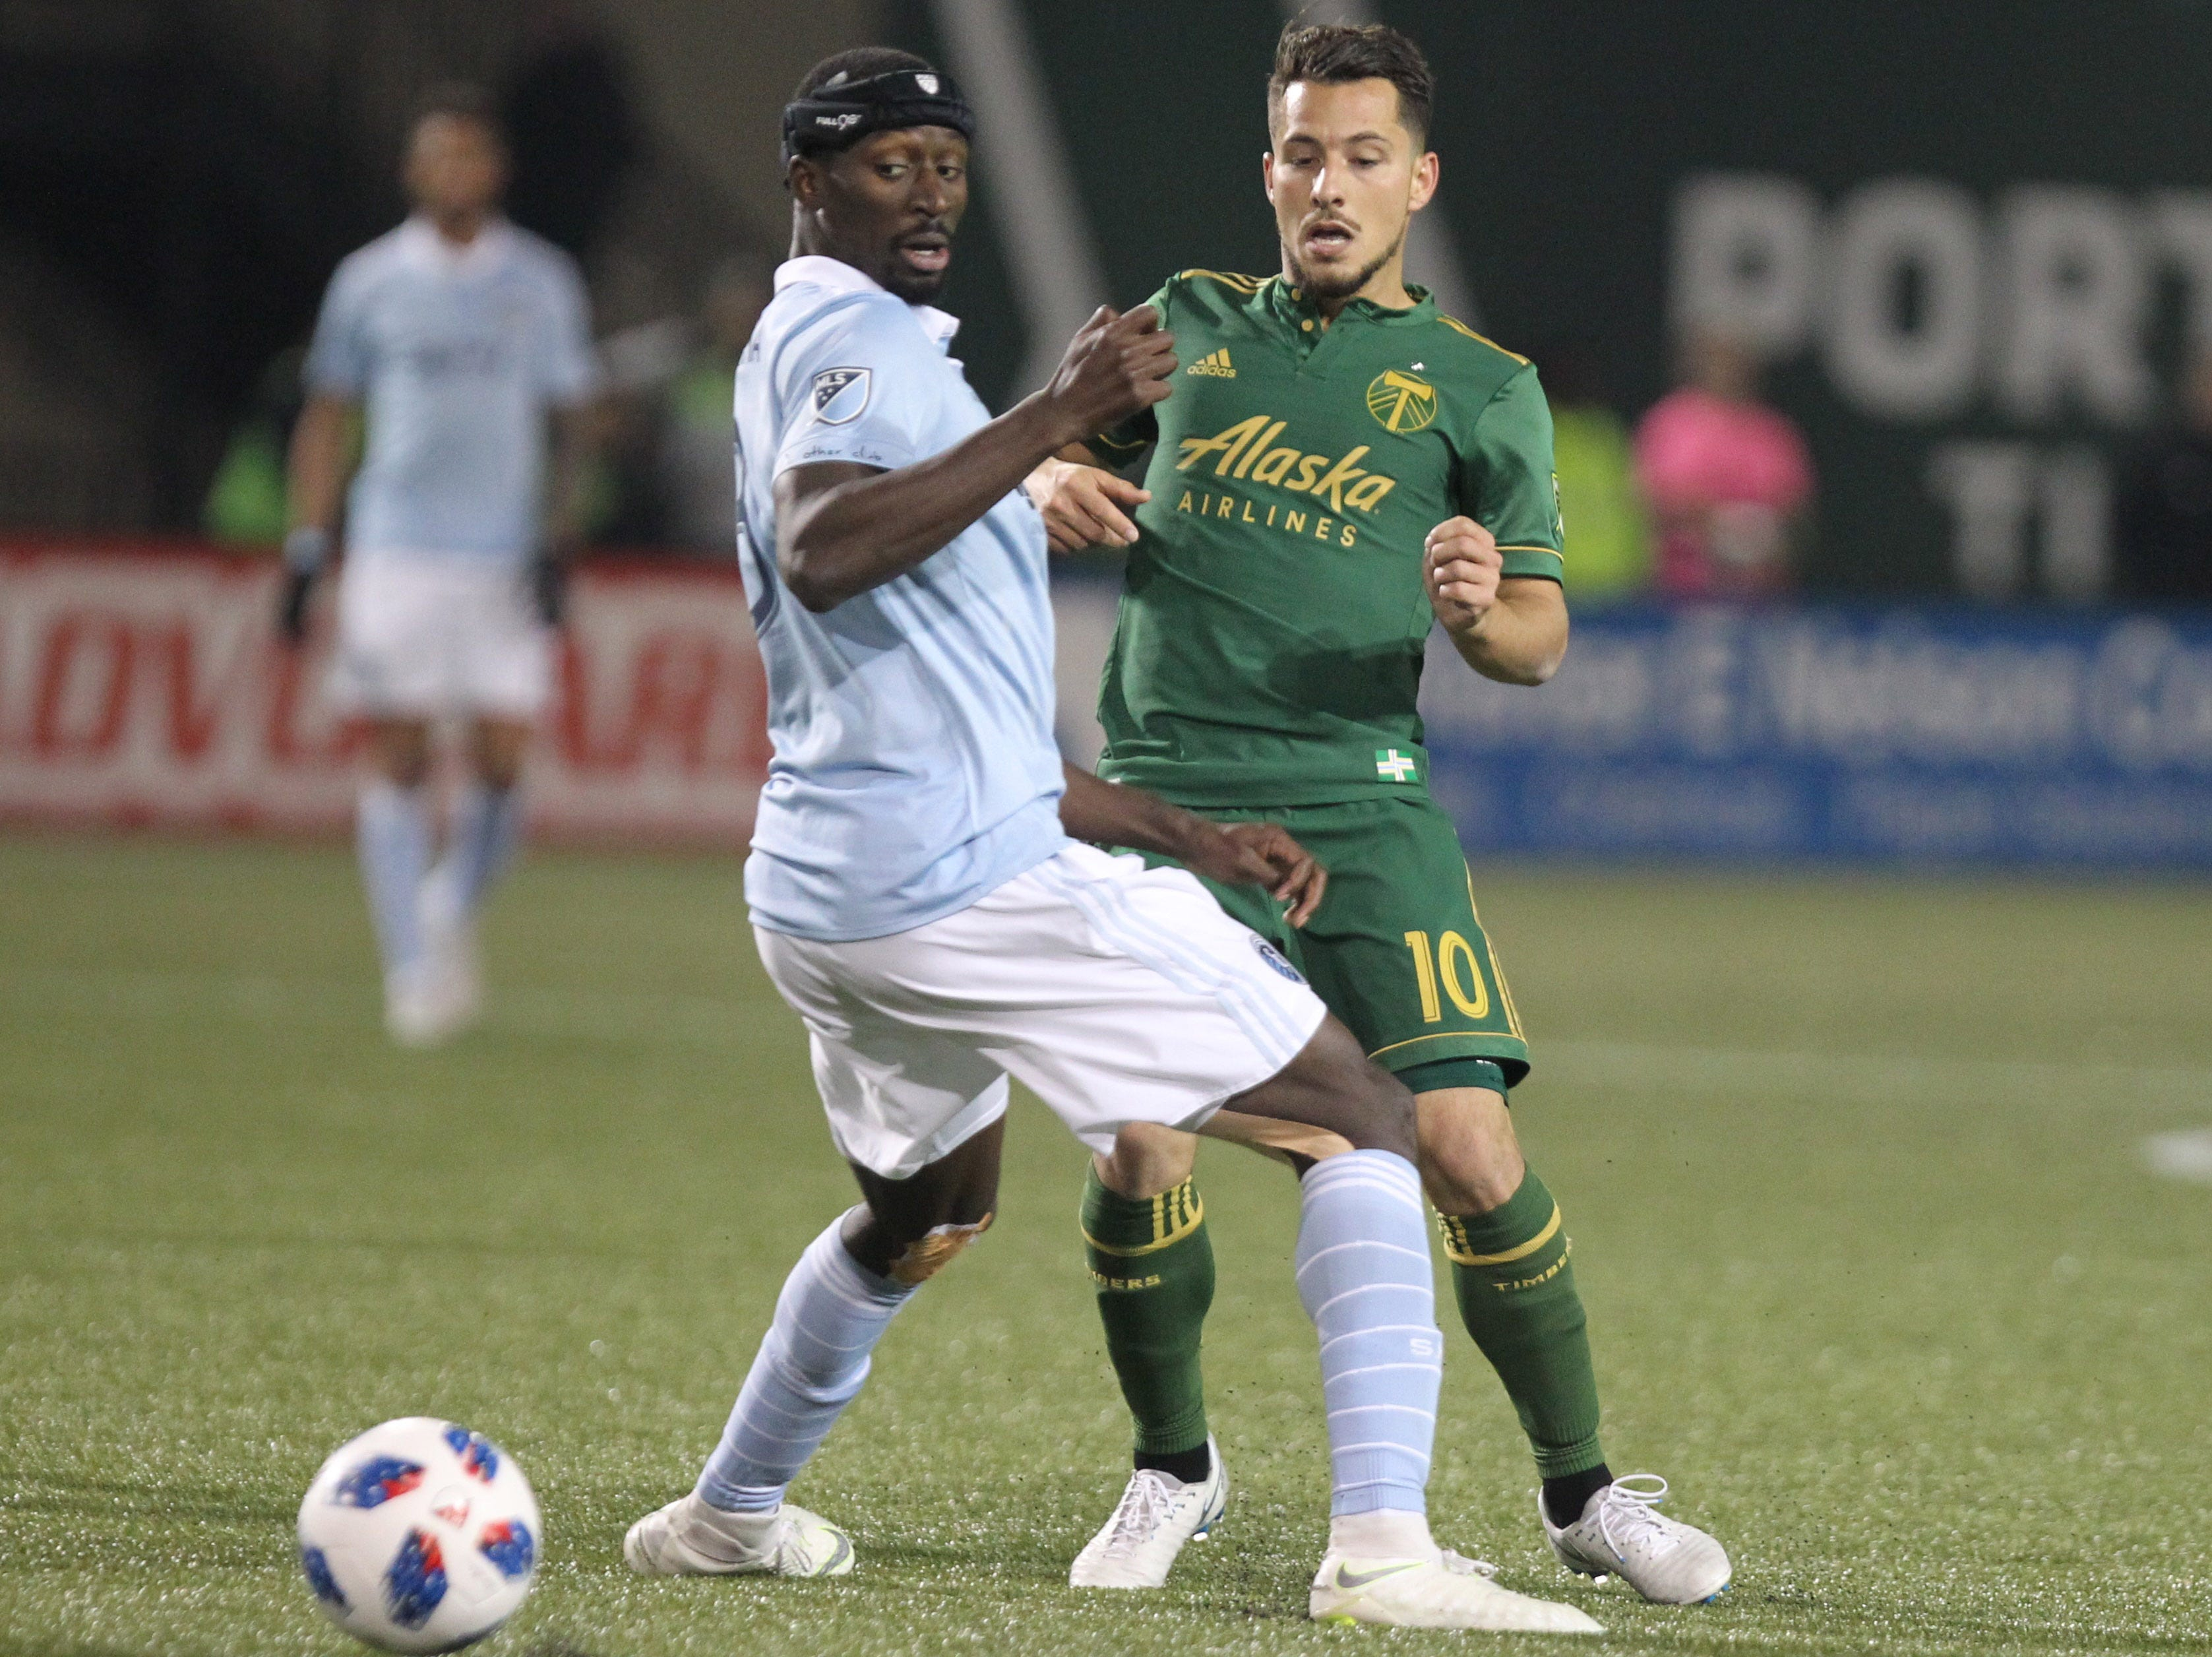 Nov 25, 2018; Portland, OR, USA; Portland Timbers midfielder Sebastian Blanco (10) passes the ball by Sporting Kansas City defender Ike Opara (3) in the second of the first leg of the MLS Western Conference Championship at Providence Park. Mandatory Credit: Jaime Valdez-USA TODAY Sports